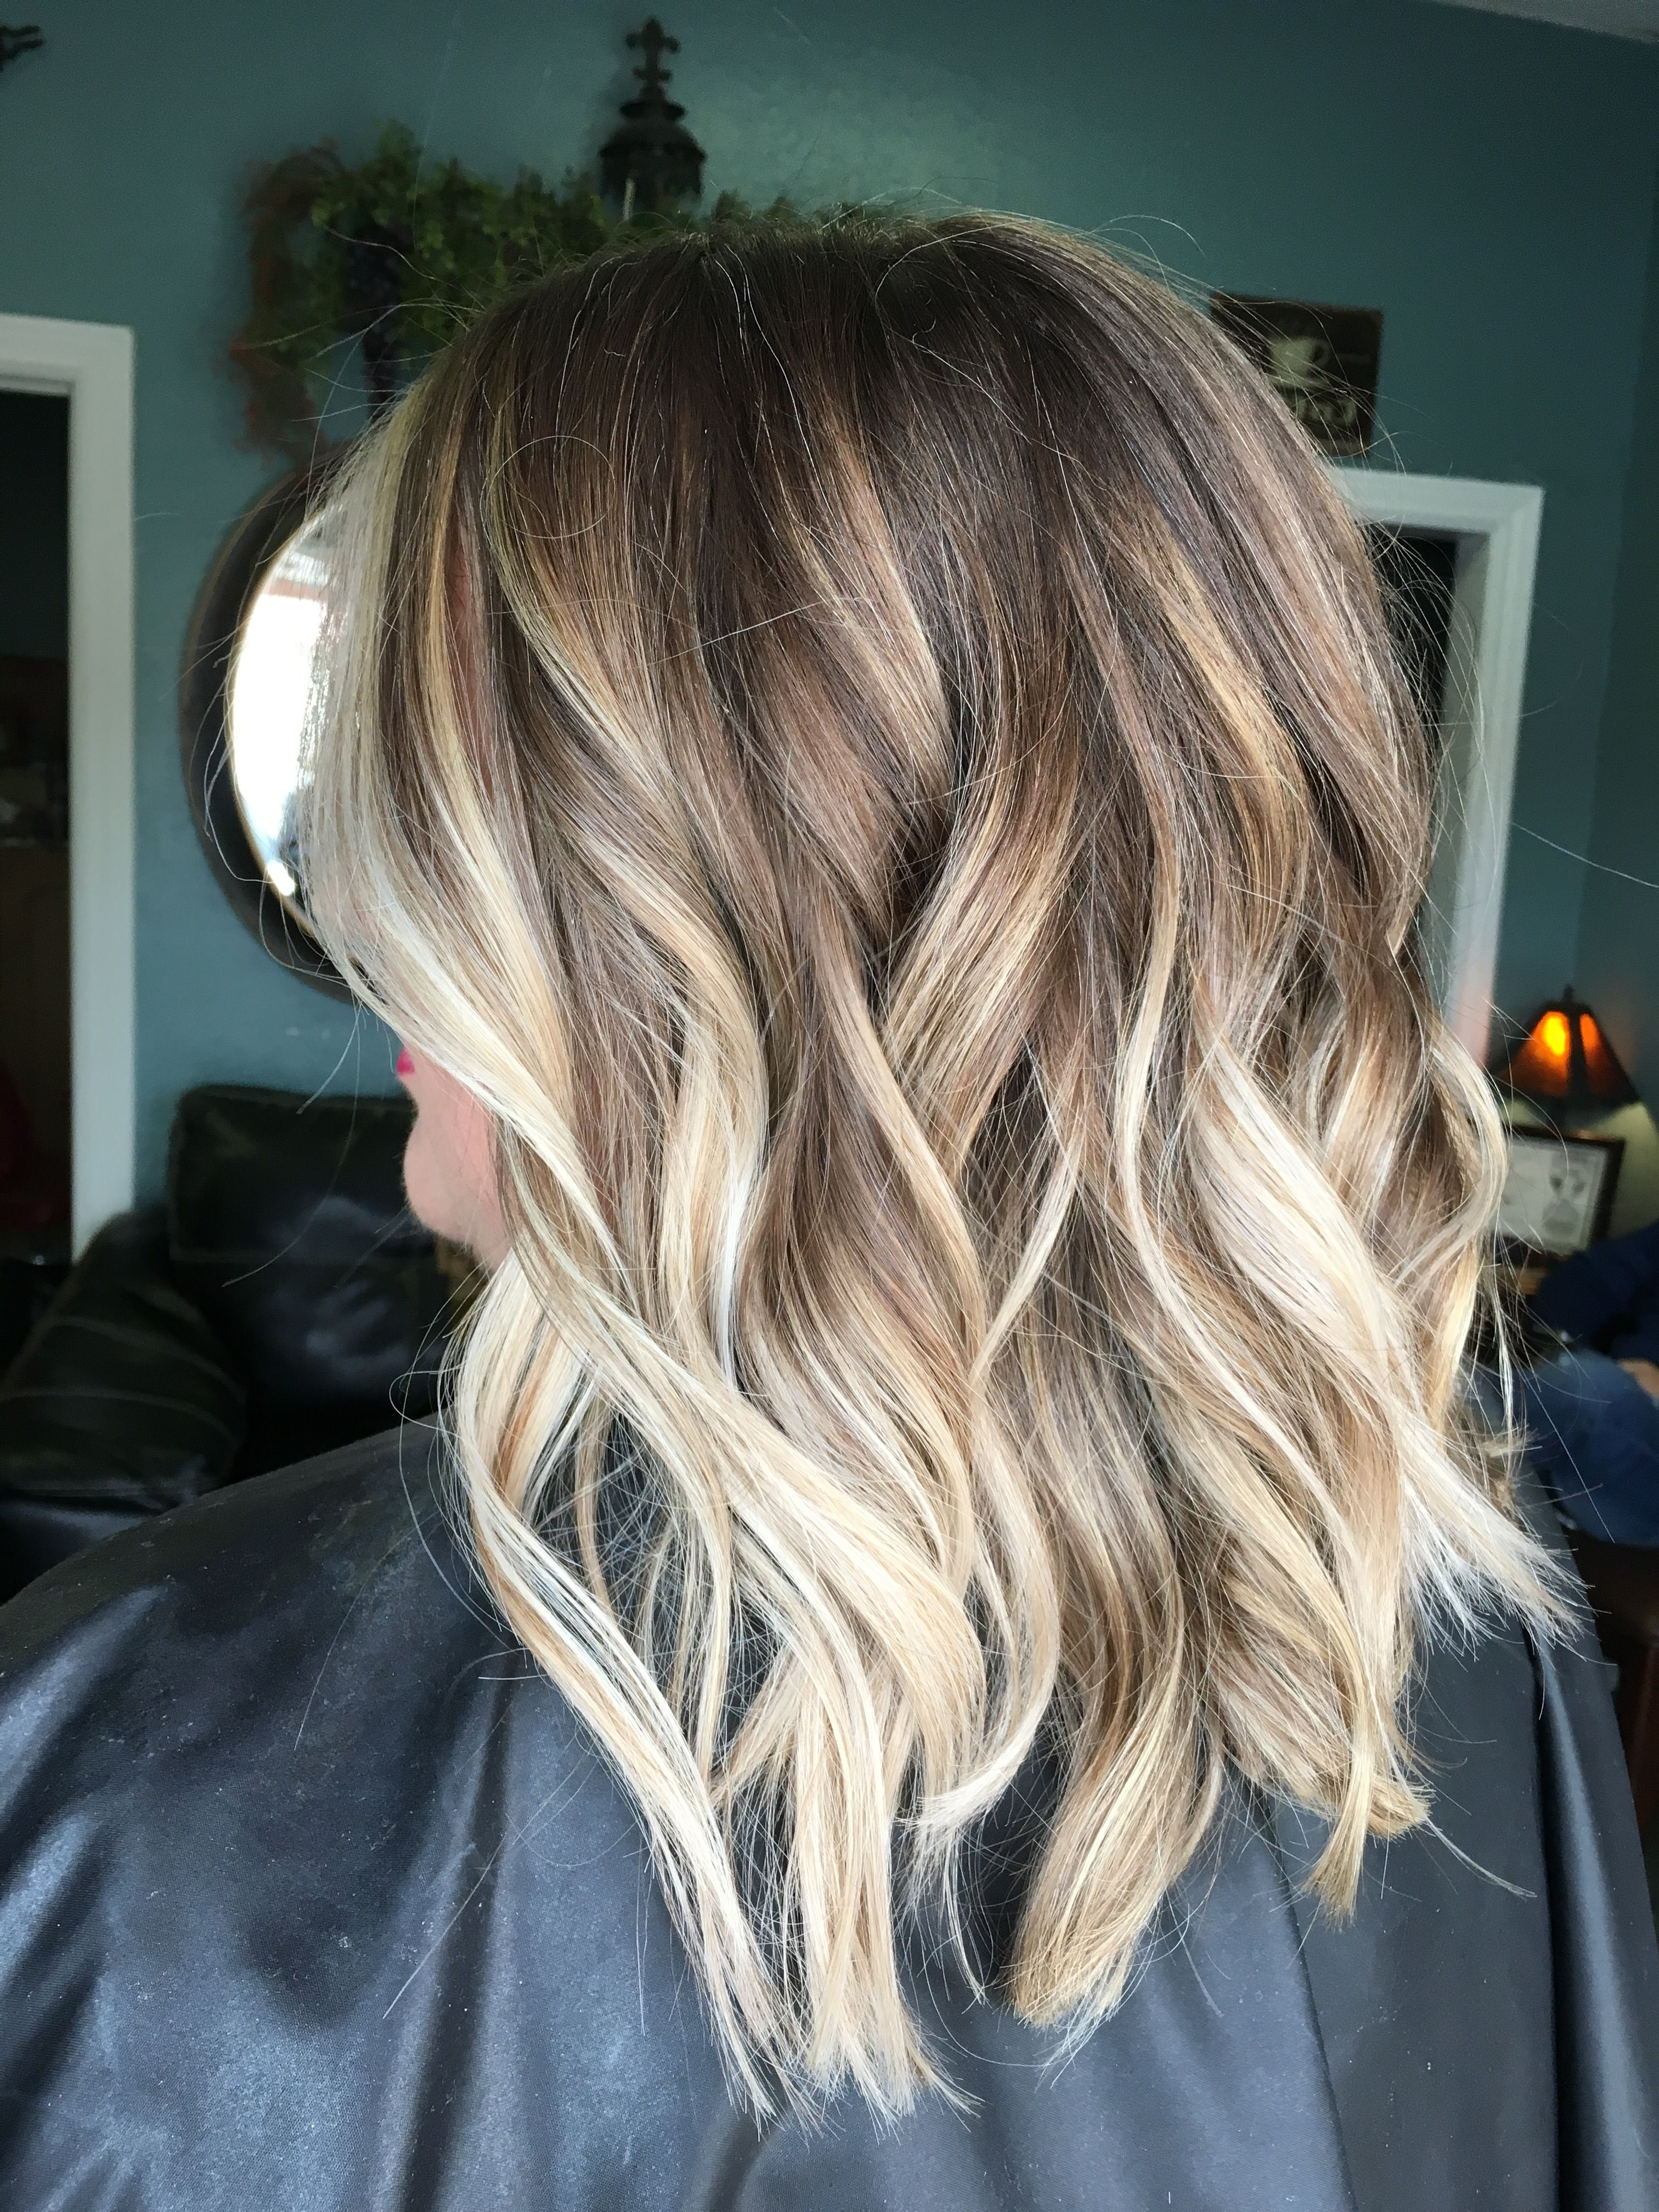 20 Inspirations of Dark And Light Contrasting Blonde Lob ...